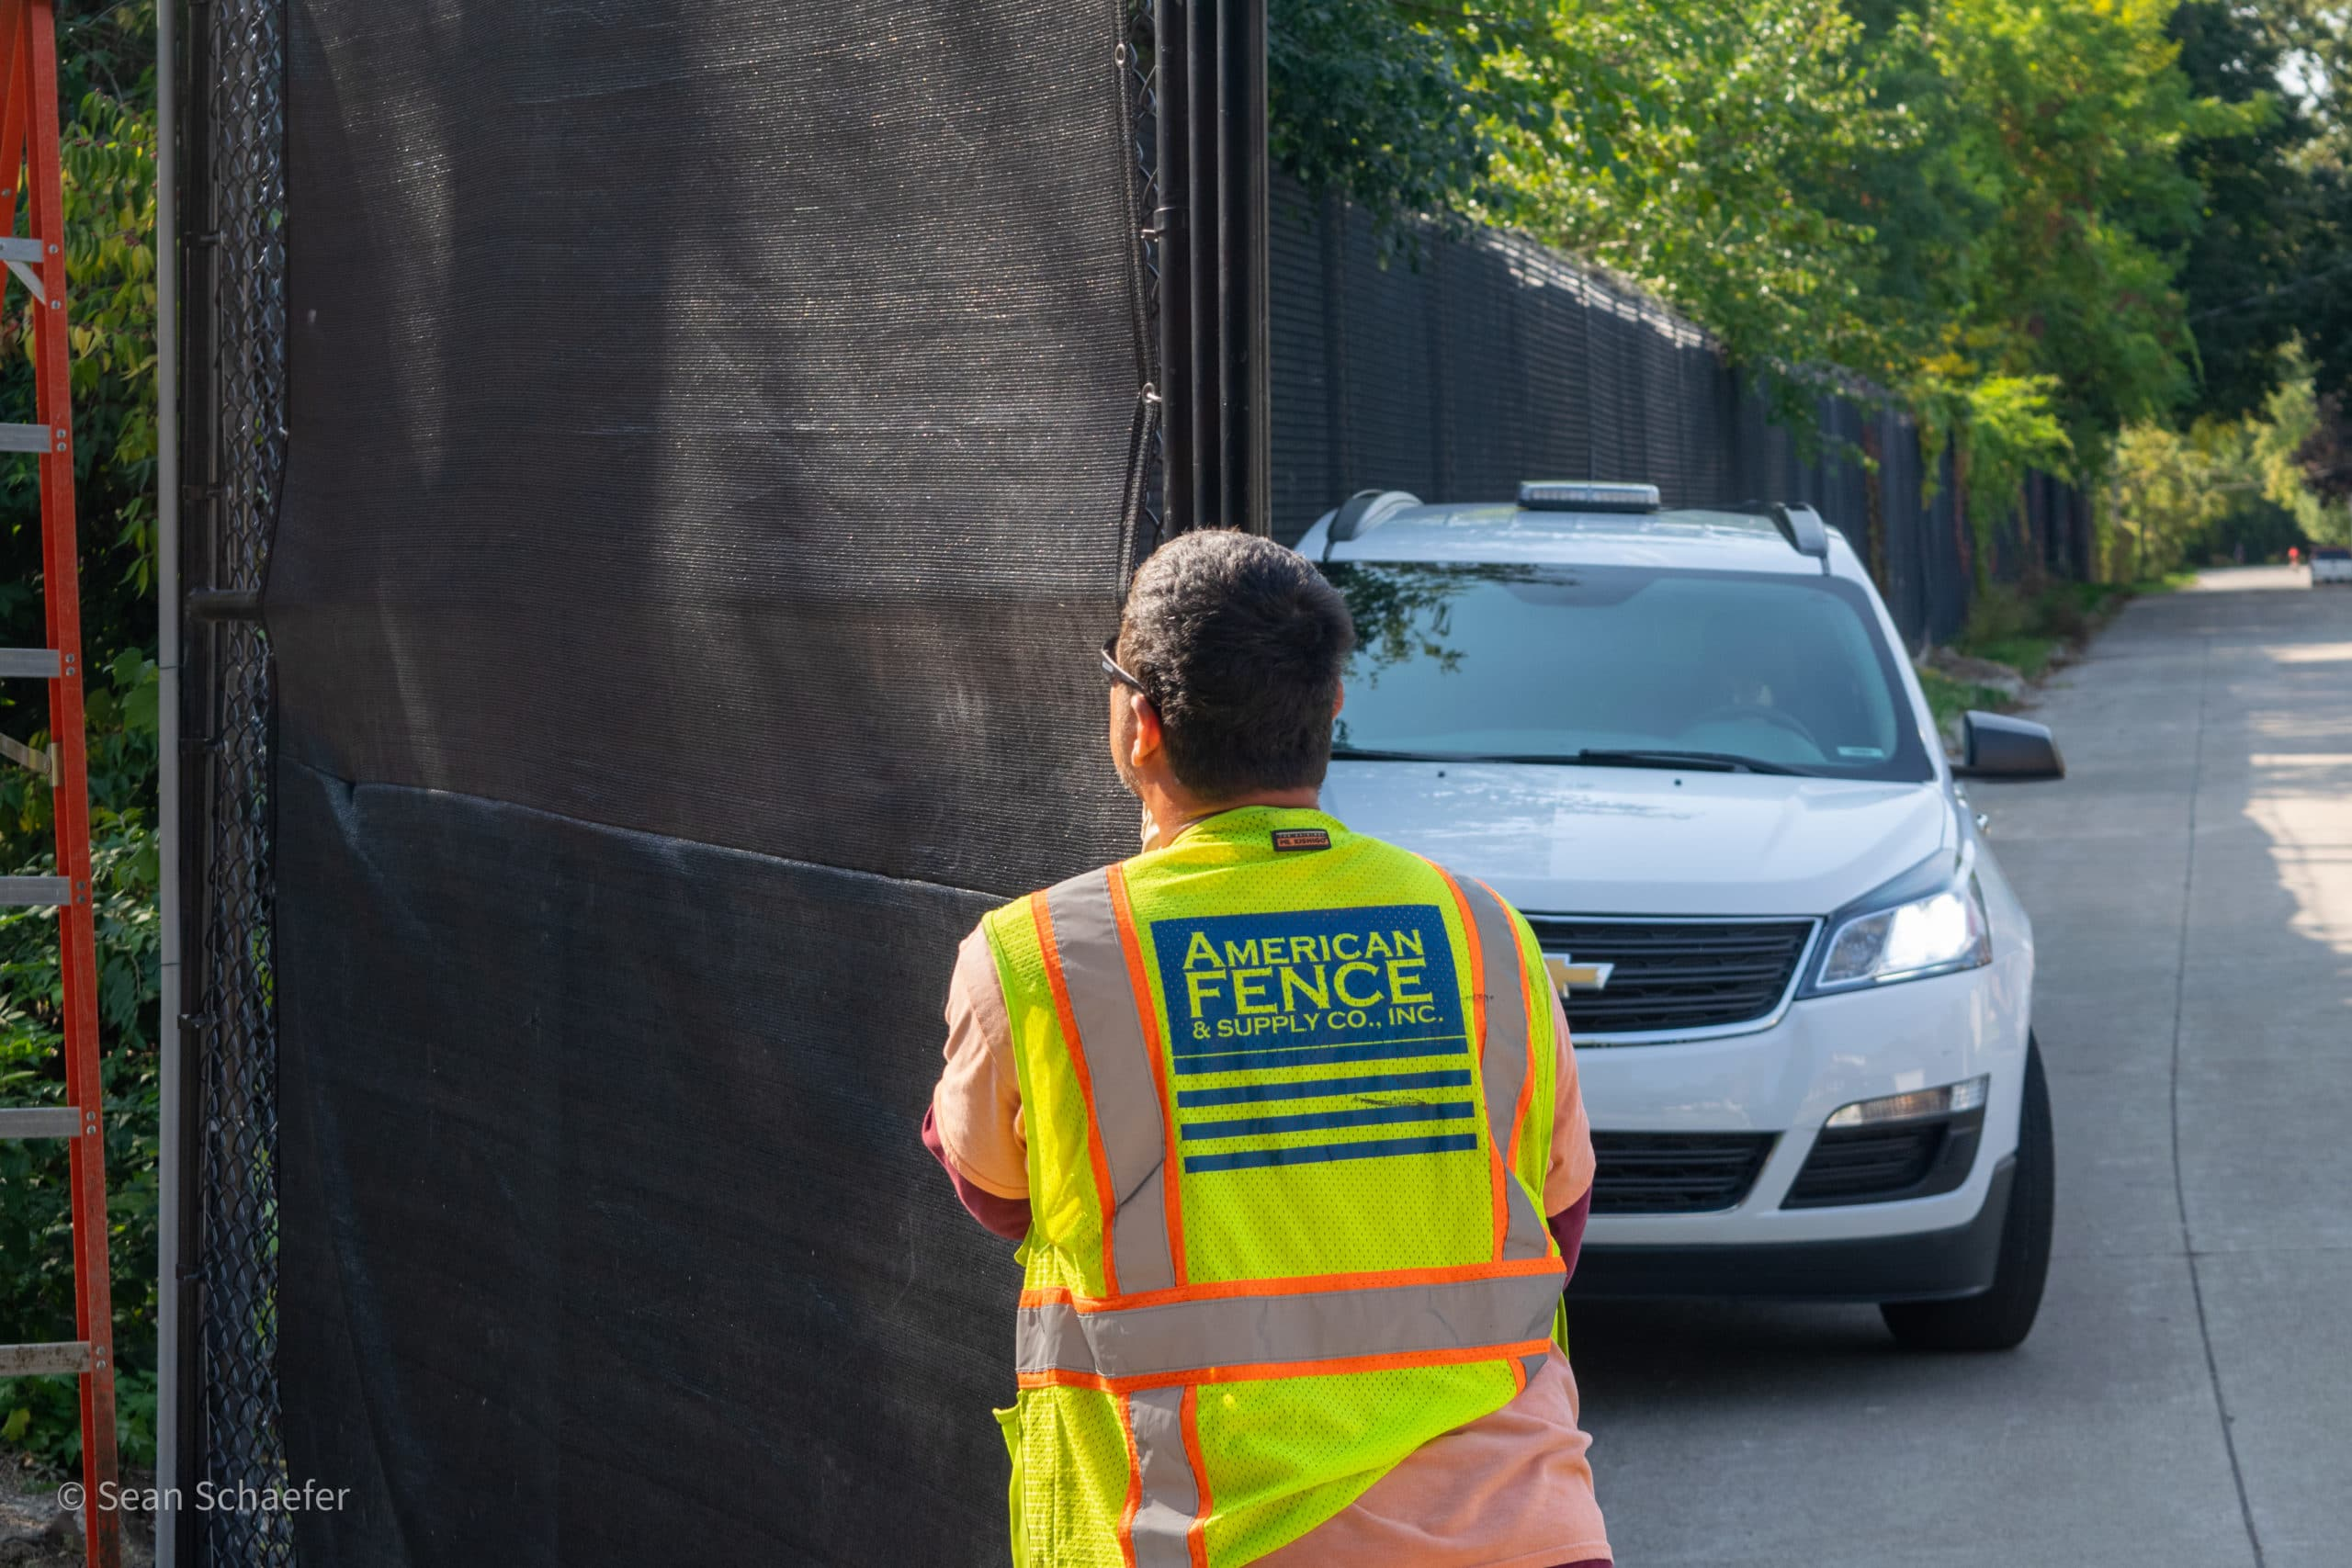 Image of for construction / labor worker (careers / jobs) page at American Fence & Supply Co., Inc. in Metro Detroit, Michigan